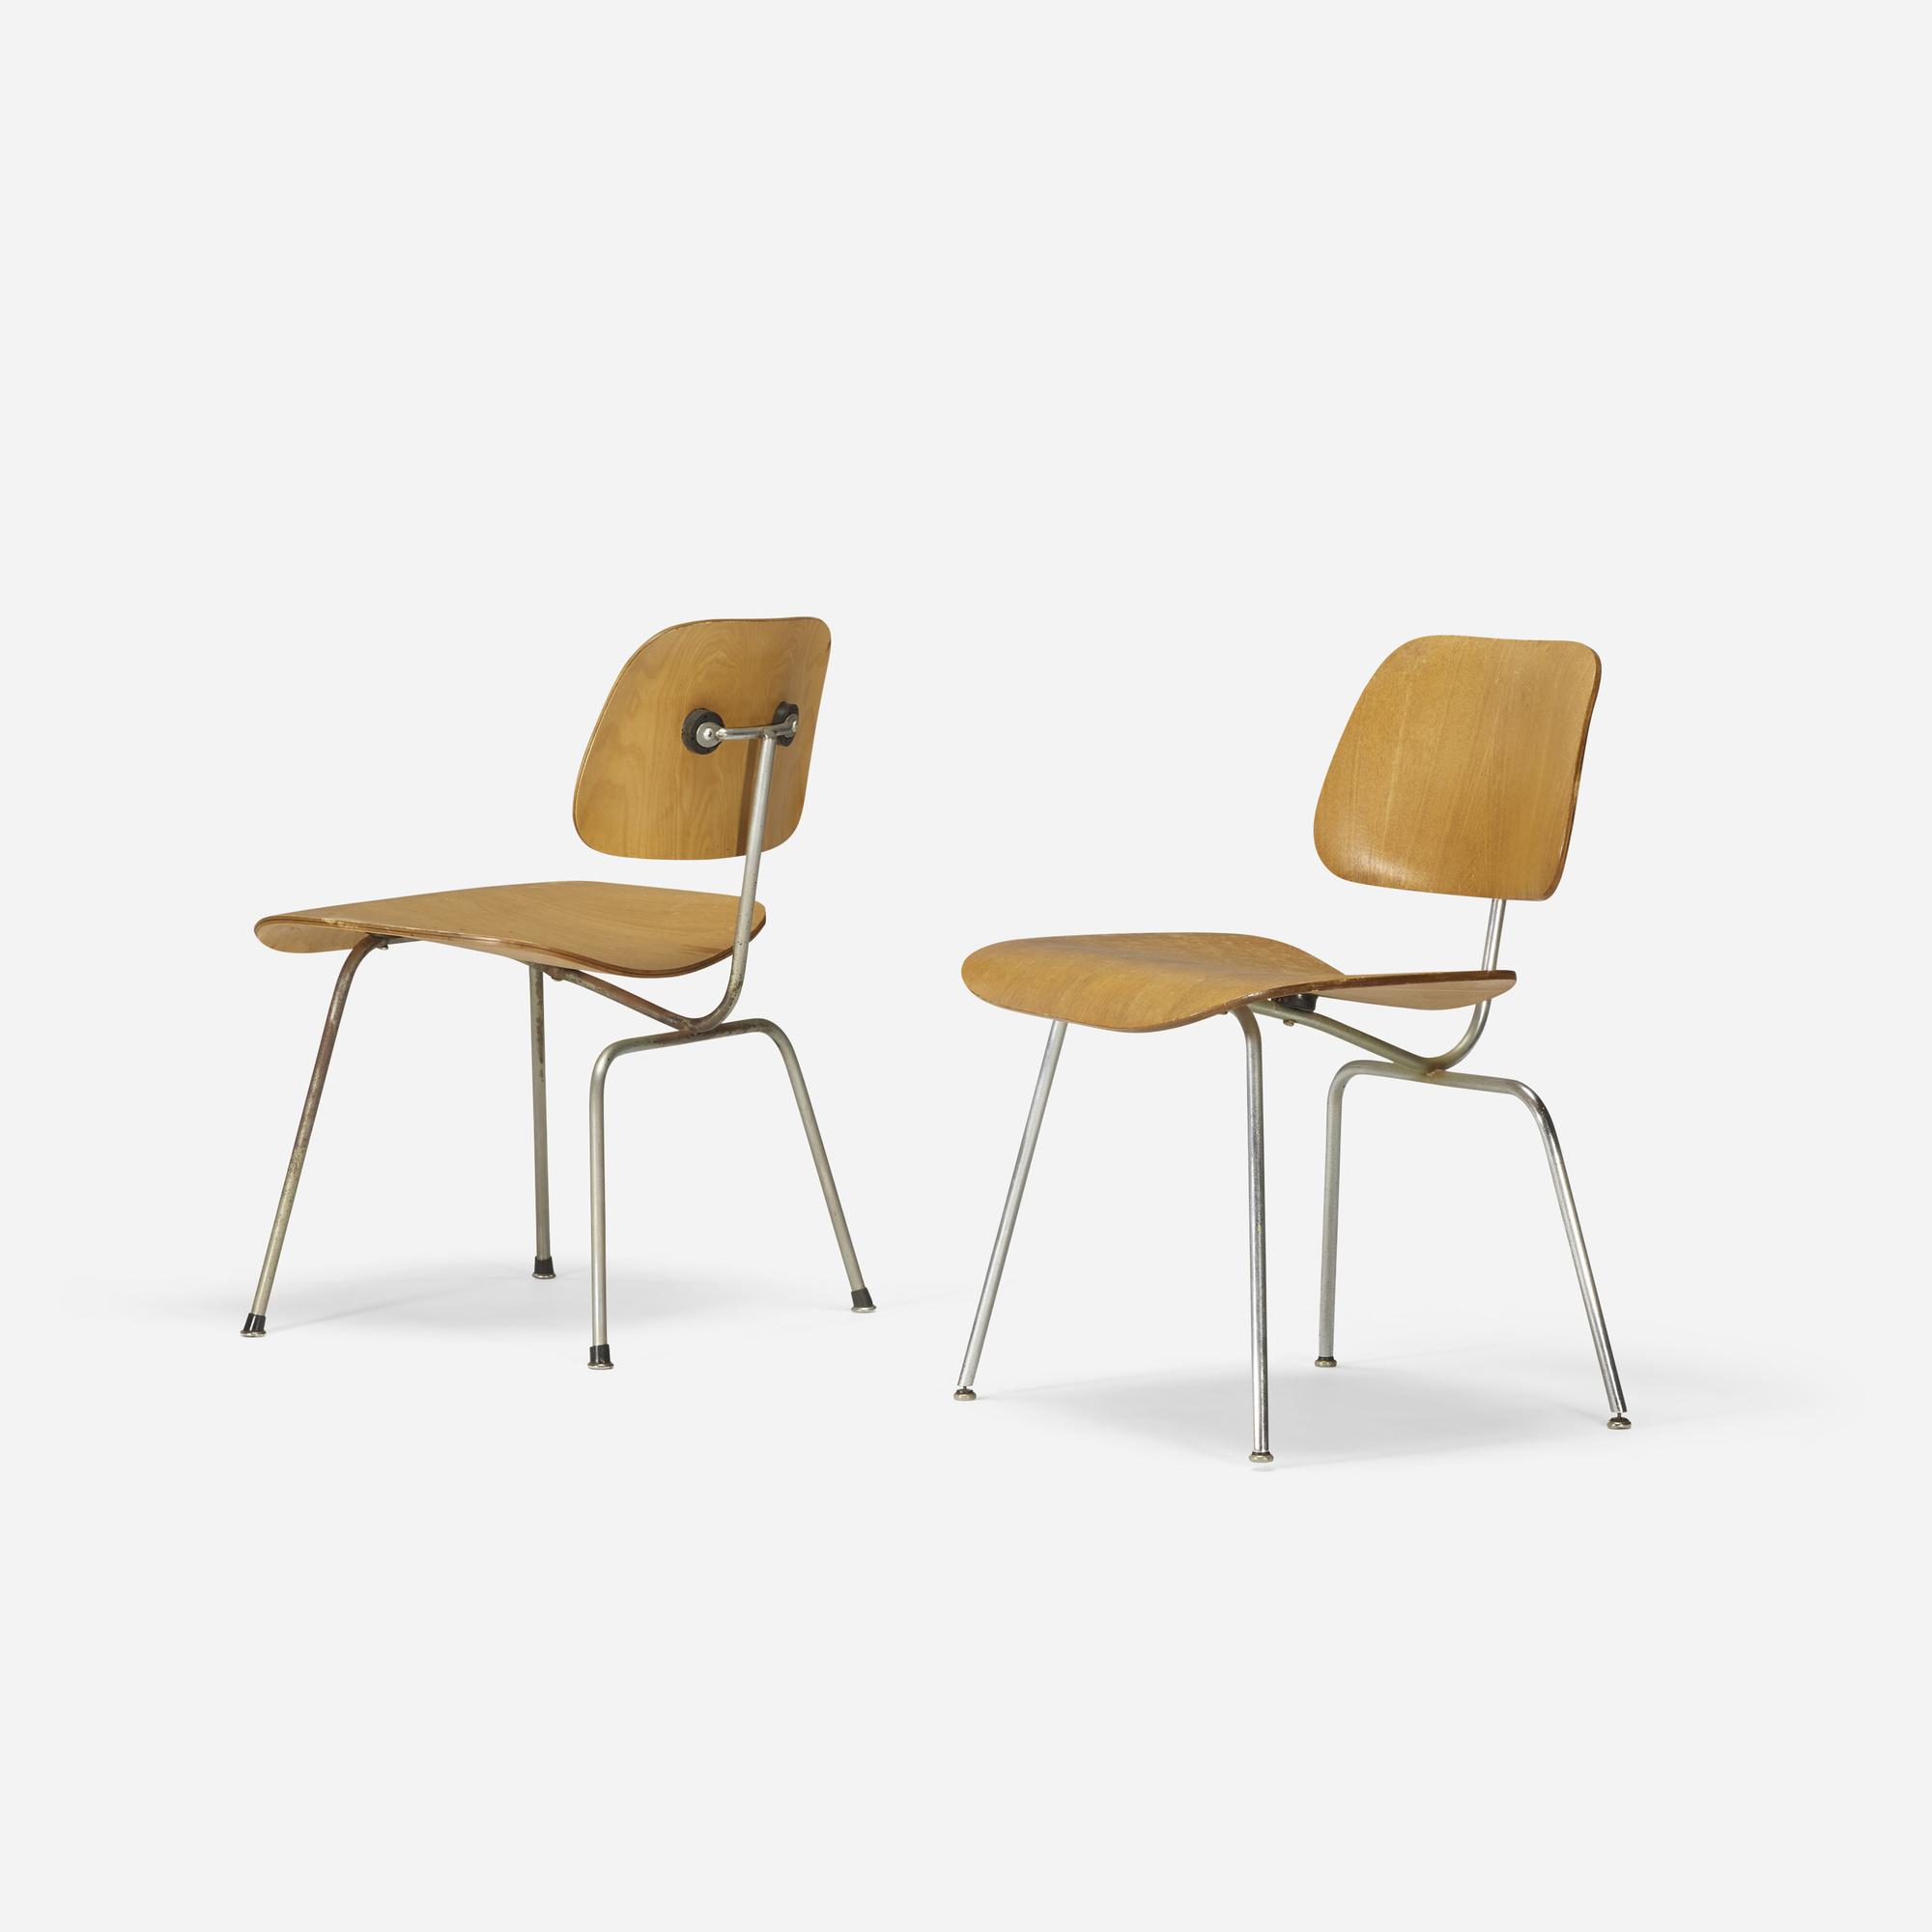 256: Charles and Ray Eames / DCMs, pair (1 of 3)